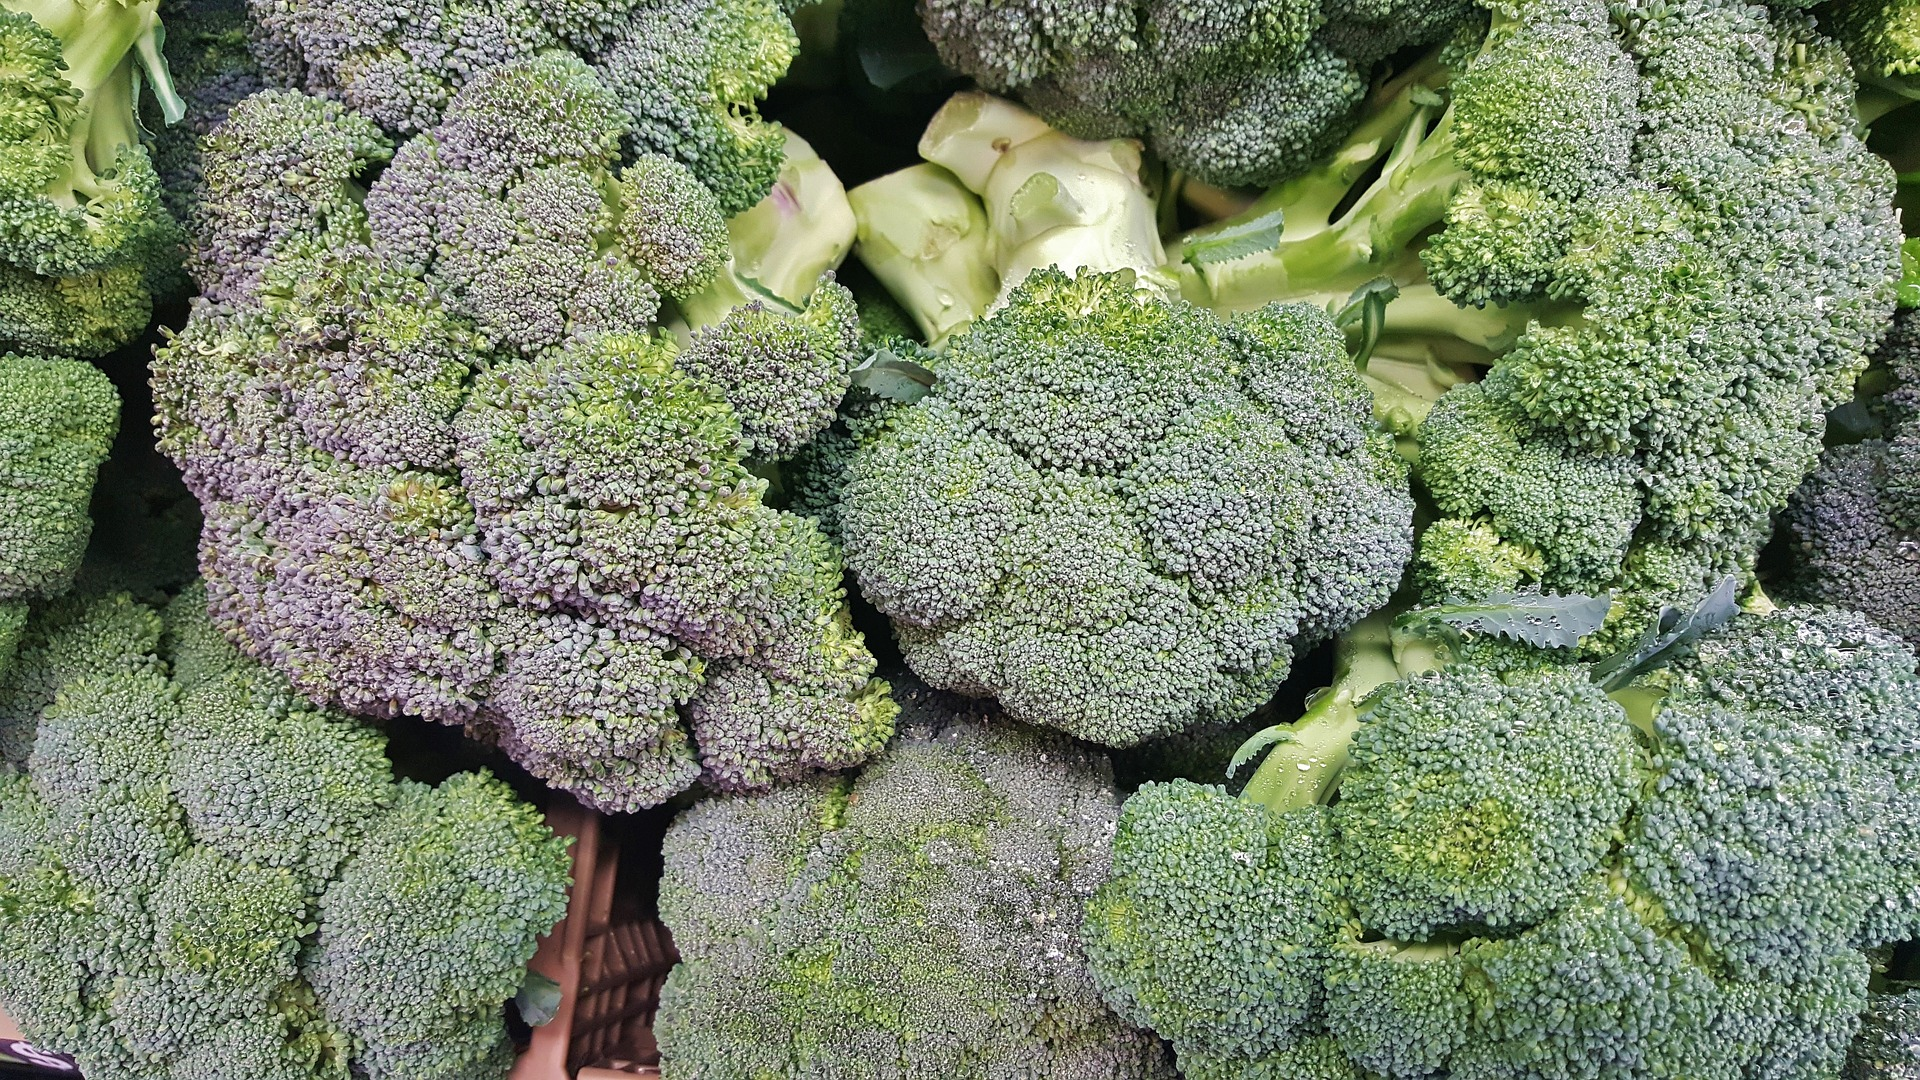 broccoli-healthy-veggies-colon+health-debadotell